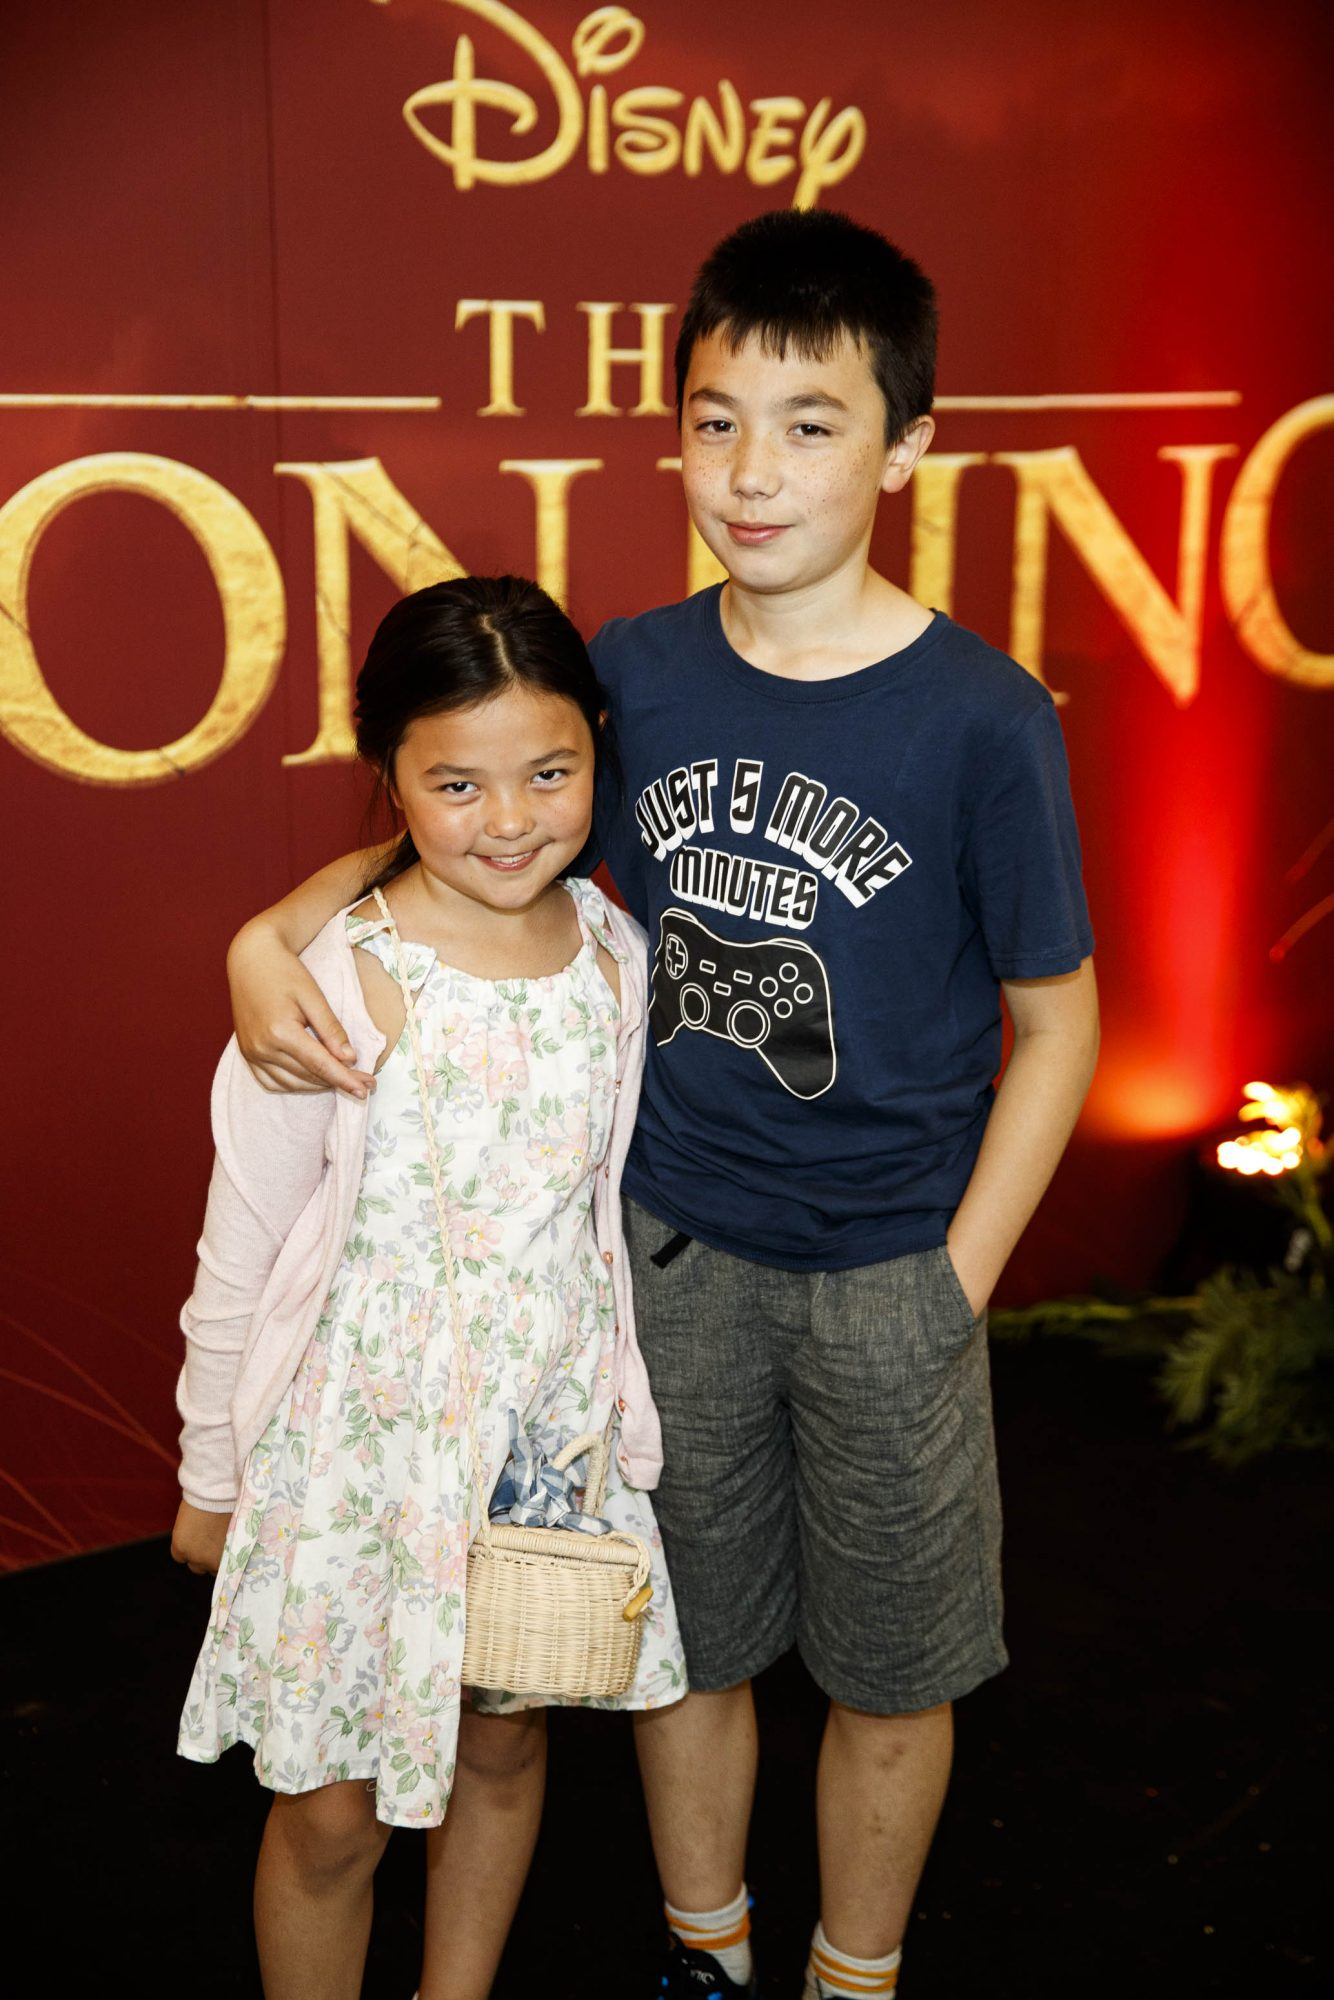 Abie Kinsella (8) and Patrick Kinsella (12) pictured at a special family screening of Disney's THE LION KING at the Odeon Point Village. Picture: Andres Poveda